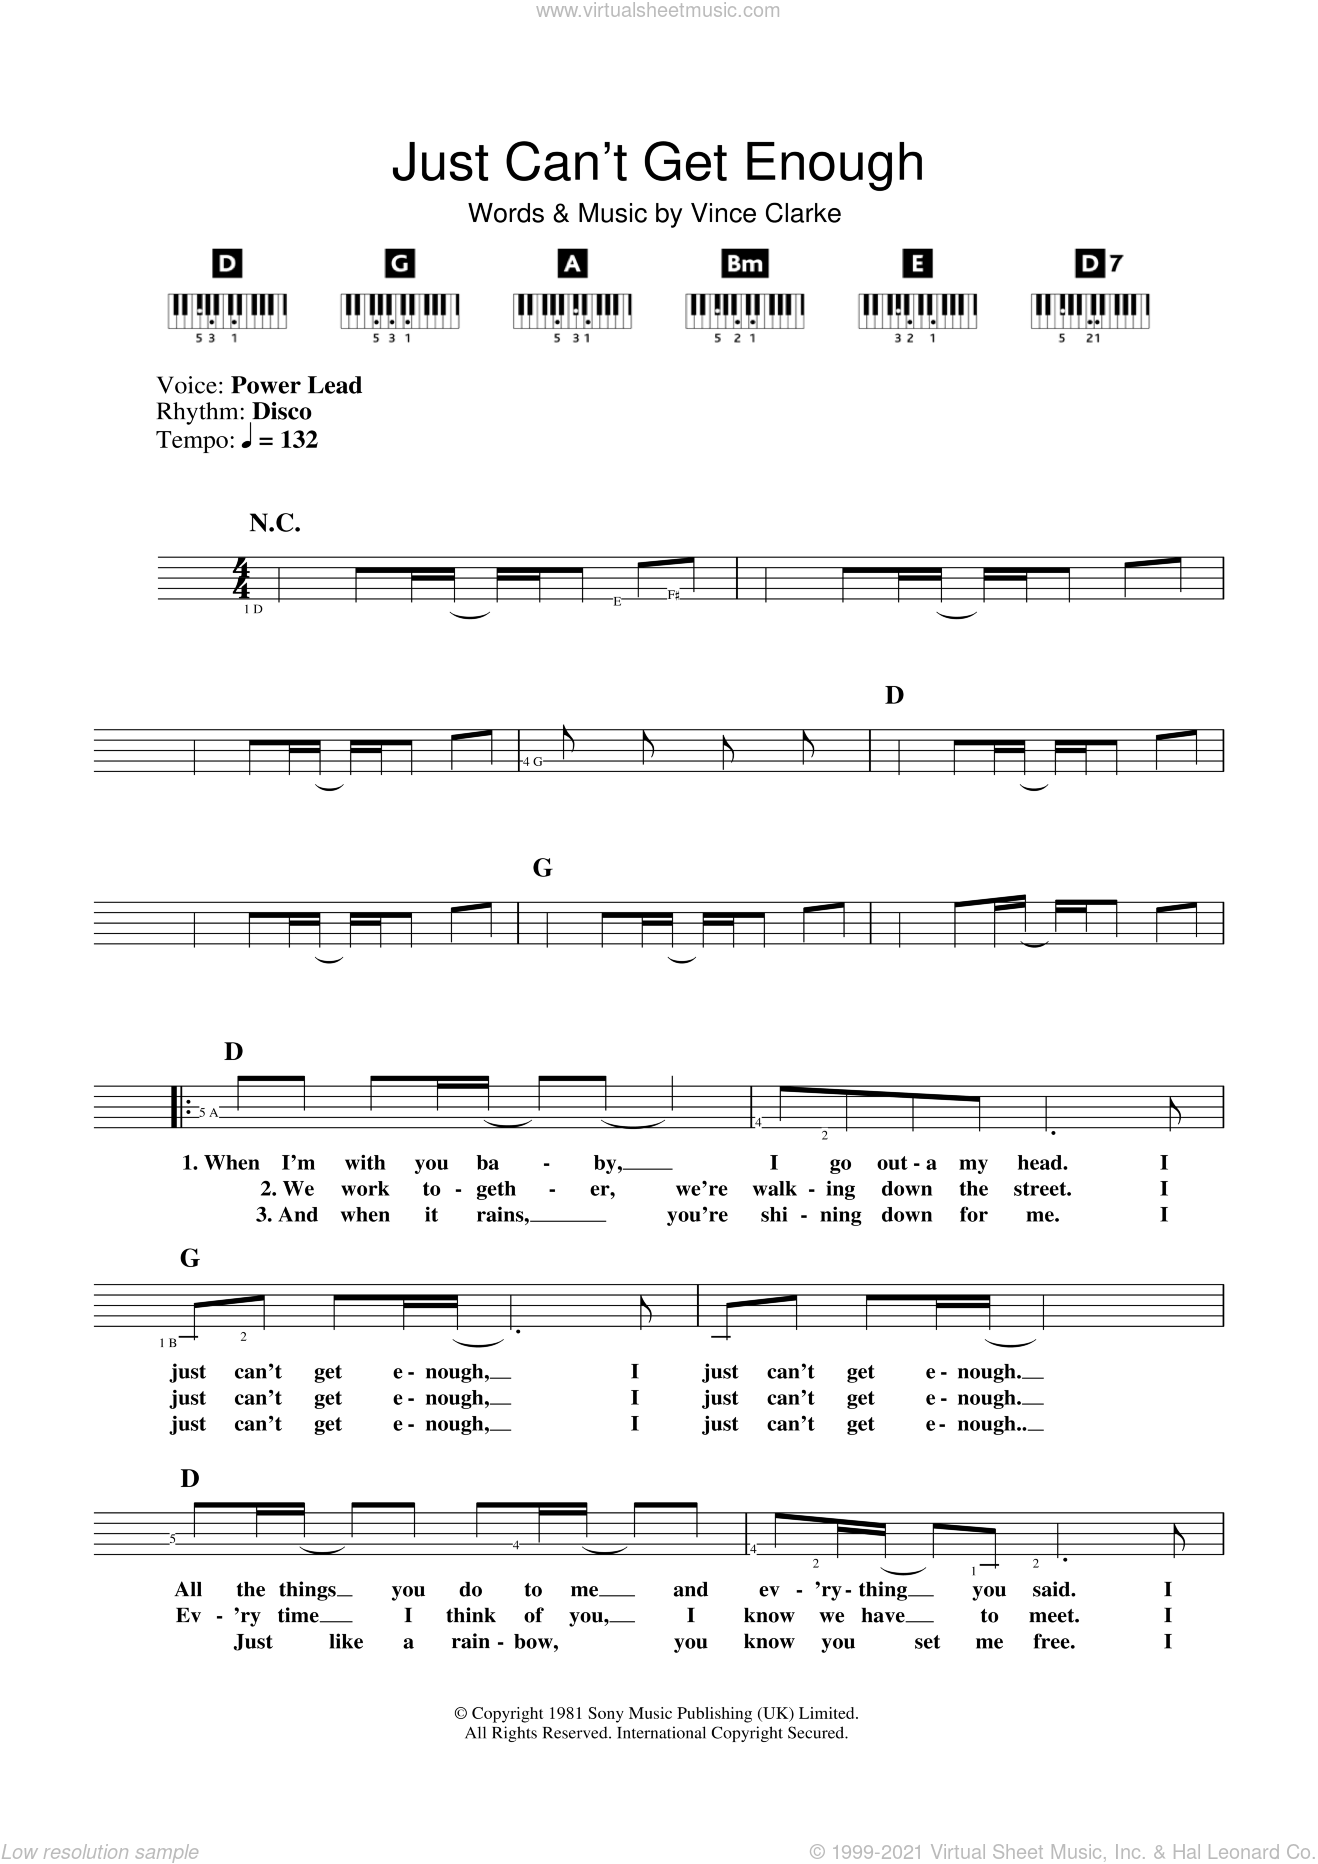 Just Can't Get Enough sheet music for piano solo (chords, lyrics, melody) by Vince Clarke